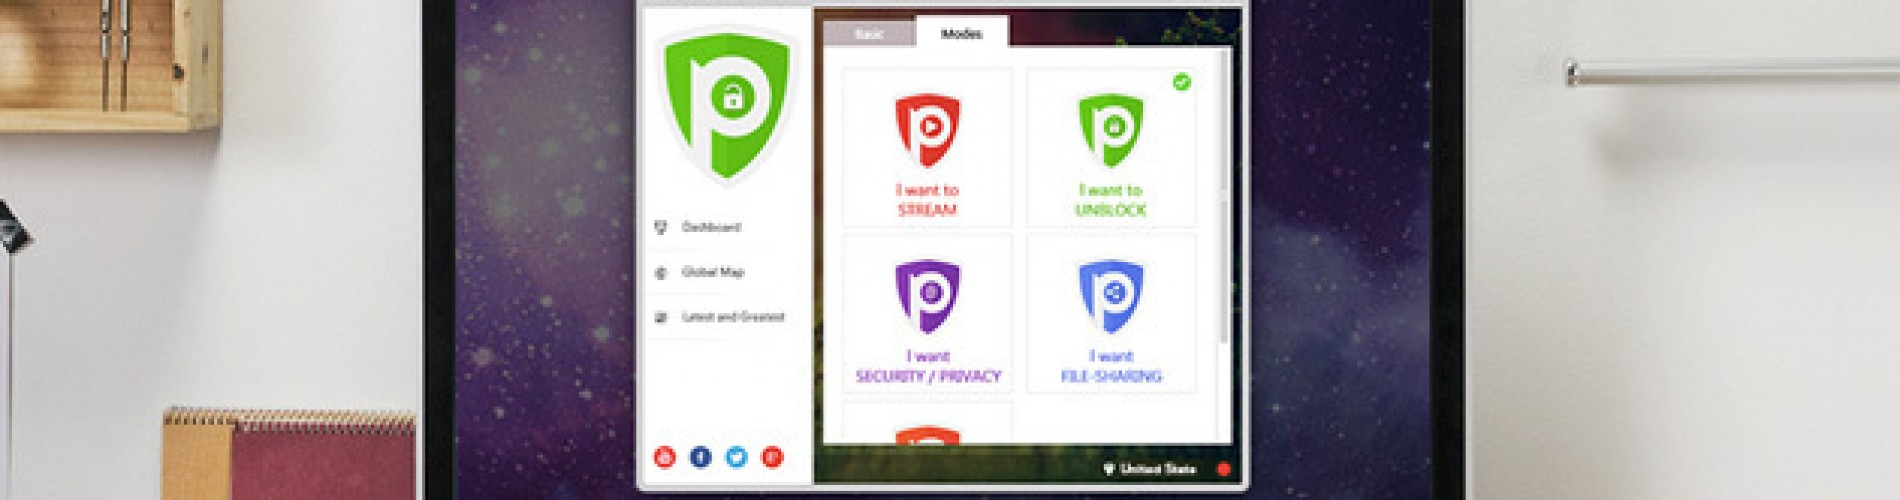 [Deal] Save an extra 15% on all VPN services and subscriptions